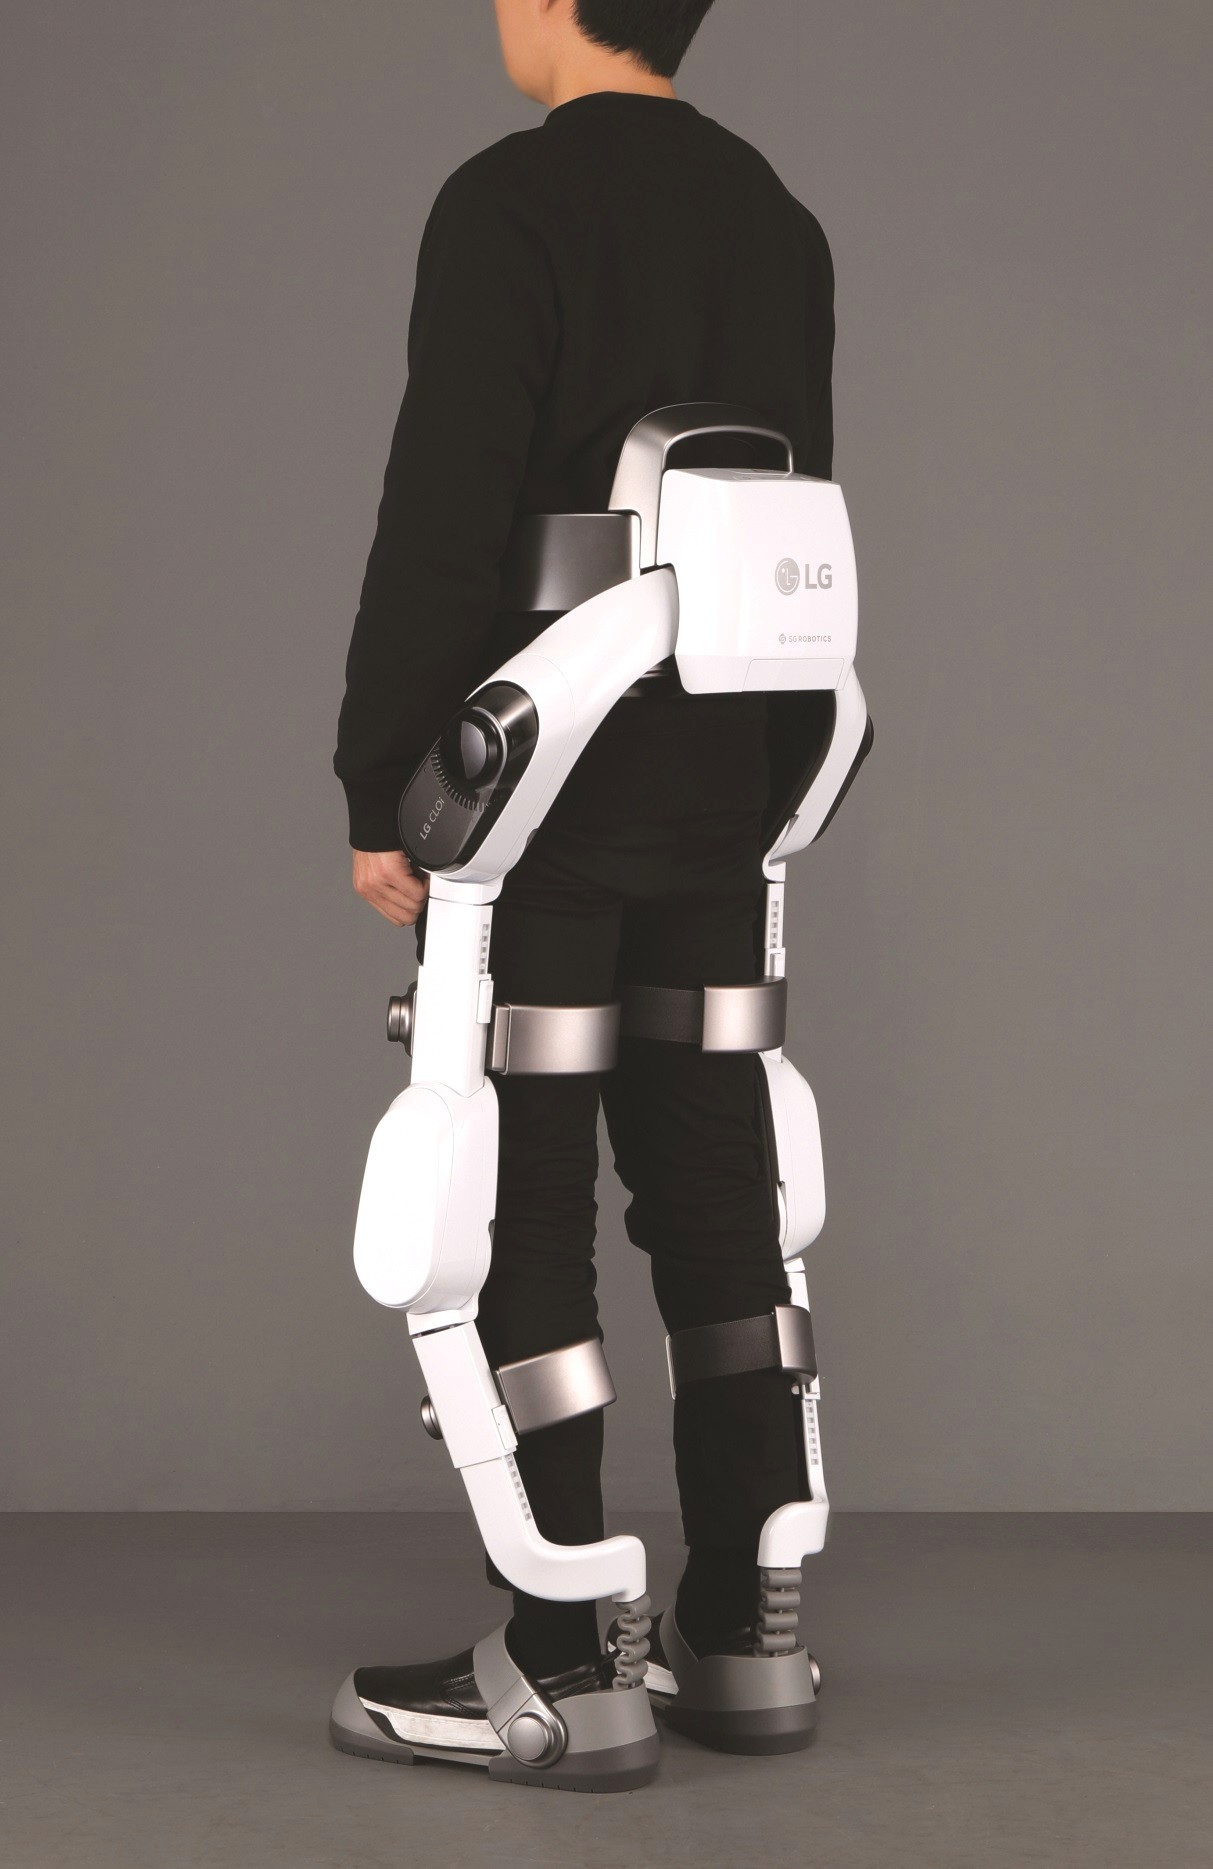 Lg Introduces Wearable Robot Exoskeleton At Ifa 2018